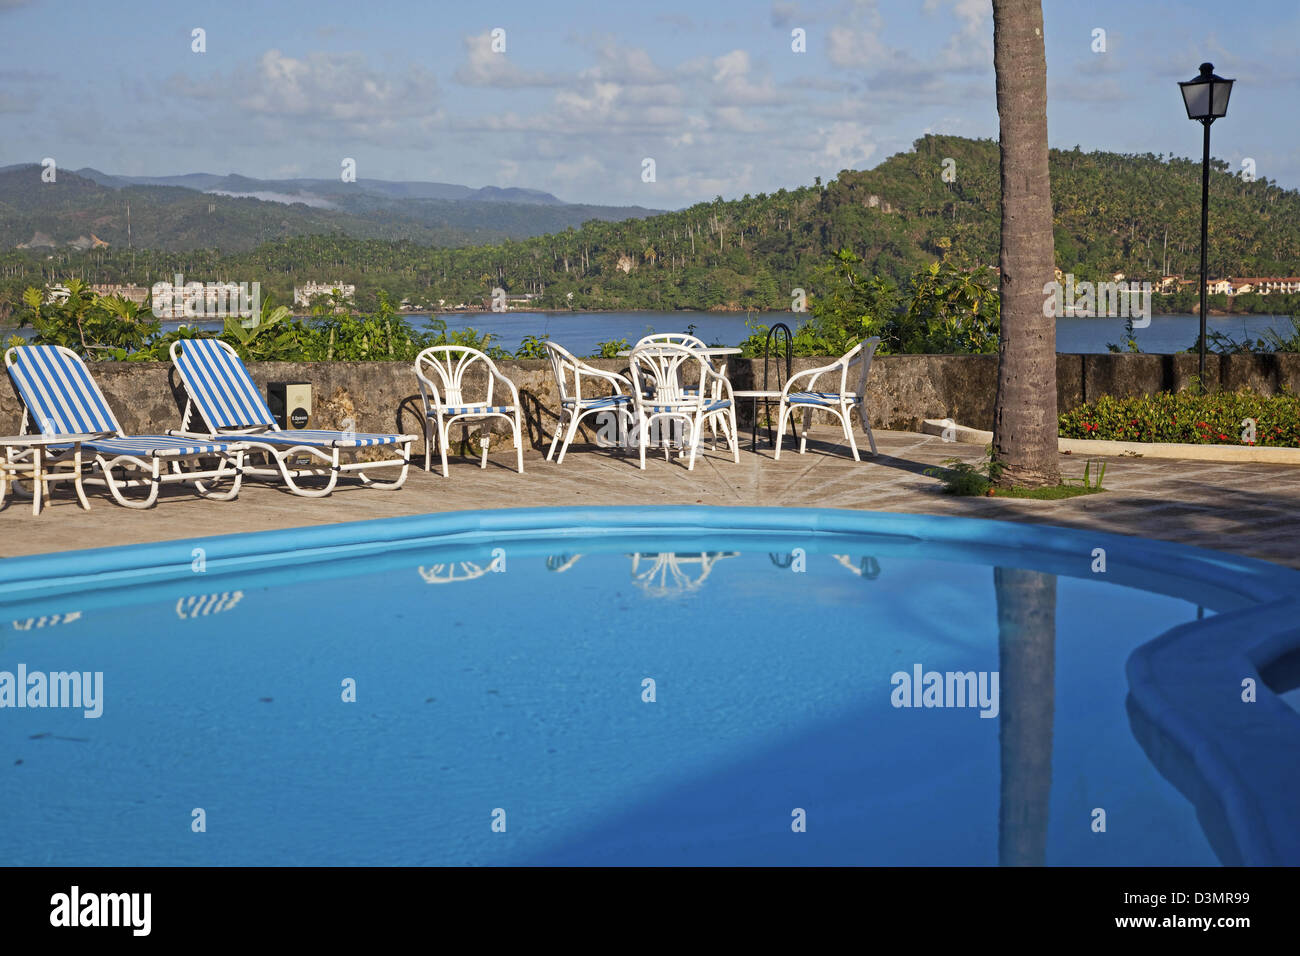 Deck chairs along blue swimming pool of Hotel El Castillo with view over bay of the Caribbean Sea at Baracoa, Cuba - Stock Image